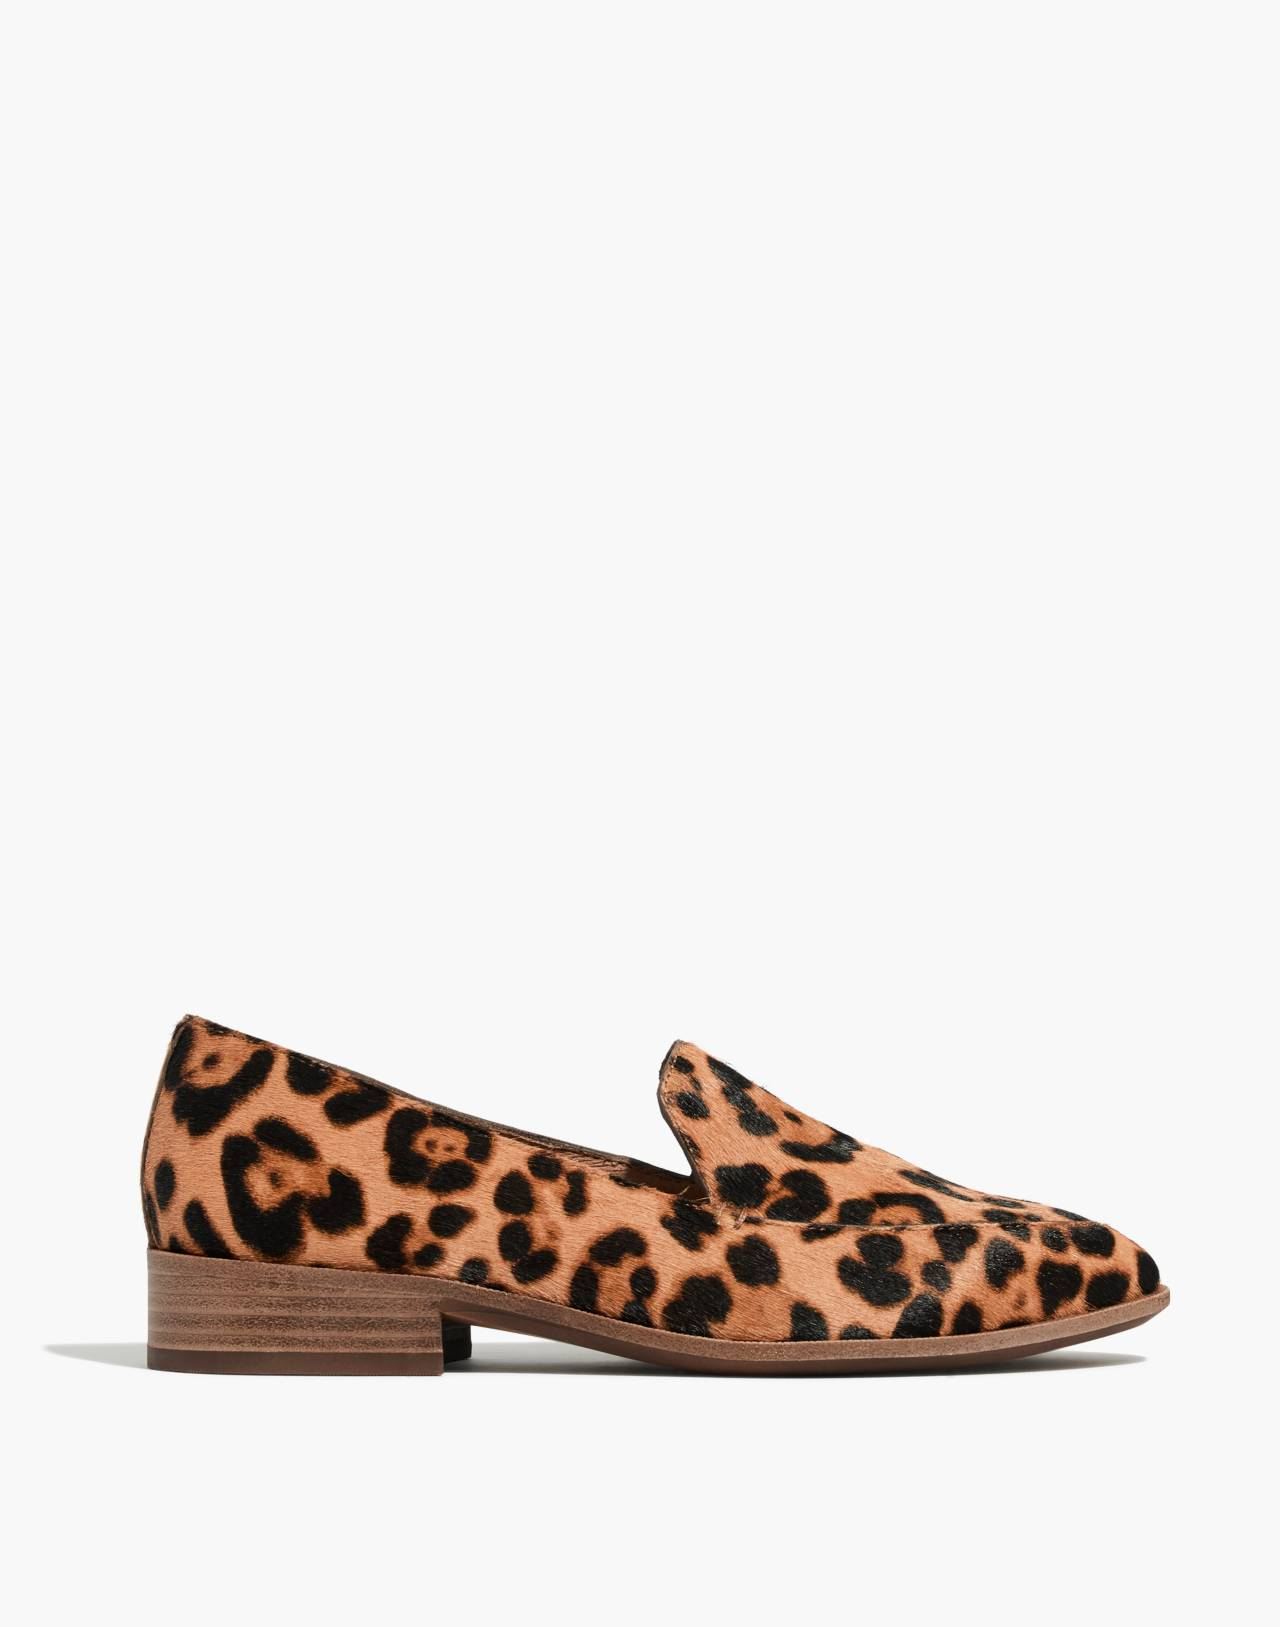 The Frances Loafer in Leopard Calf Hair in truffle multi image 3